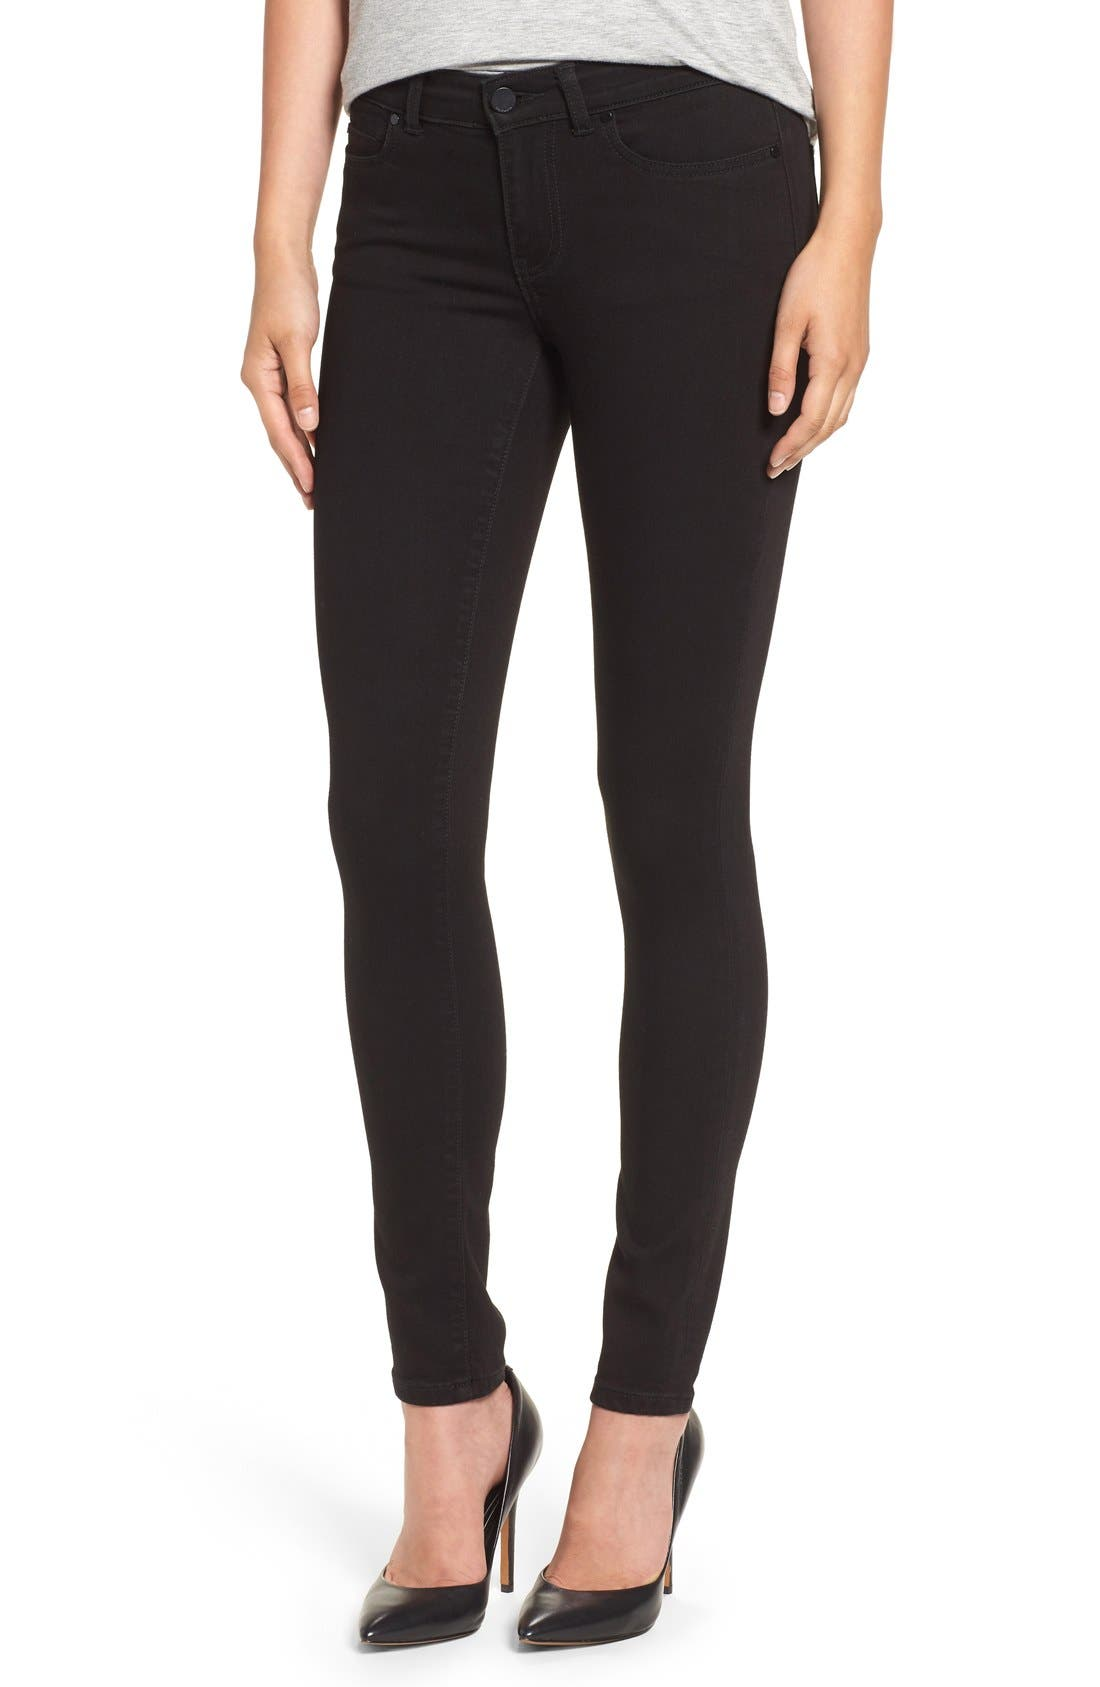 Save wit and wisdom jeans to get e-mail alerts and updates on your eBay Feed. + Items in search results. SPONSORED. Wit and Wisdom Ab-solution Stretch Skinny Jeans sz 2 Black. 2. $ Buy It Now +$ shipping. Women's Wit And Wisdom Jeans 2 Stretch Designer Nordstrom Skinny Black.